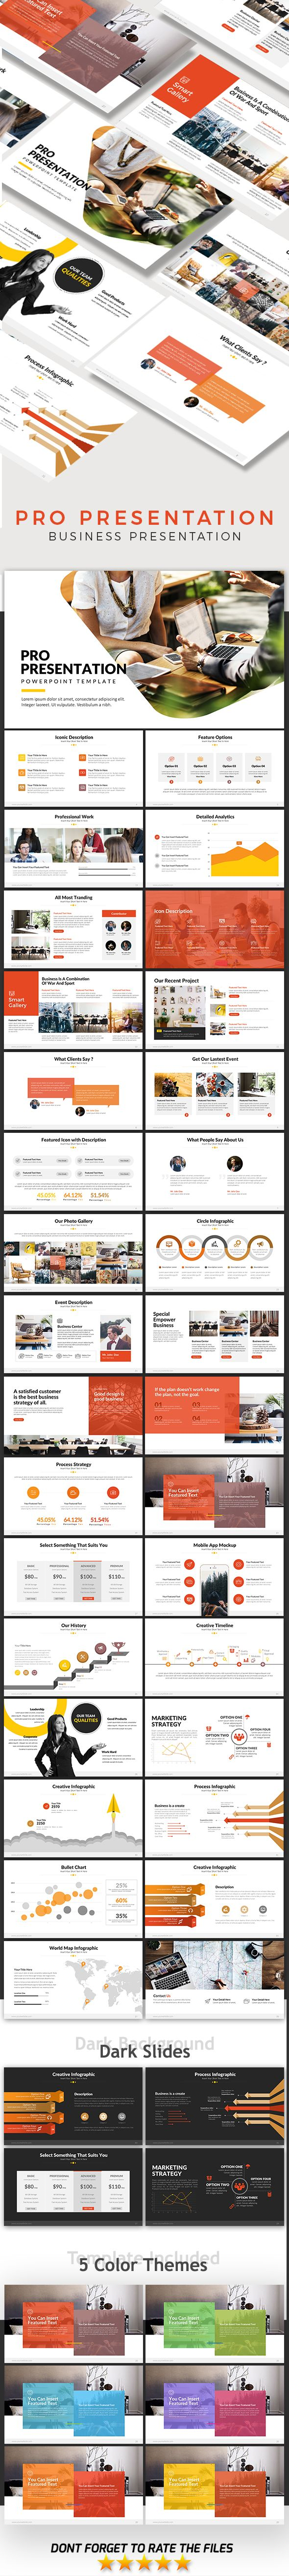 Pro presentation powerpoint template business powerpoint pro presentation powerpoint template business powerpoint templates power point templates and design layouts alramifo Choice Image